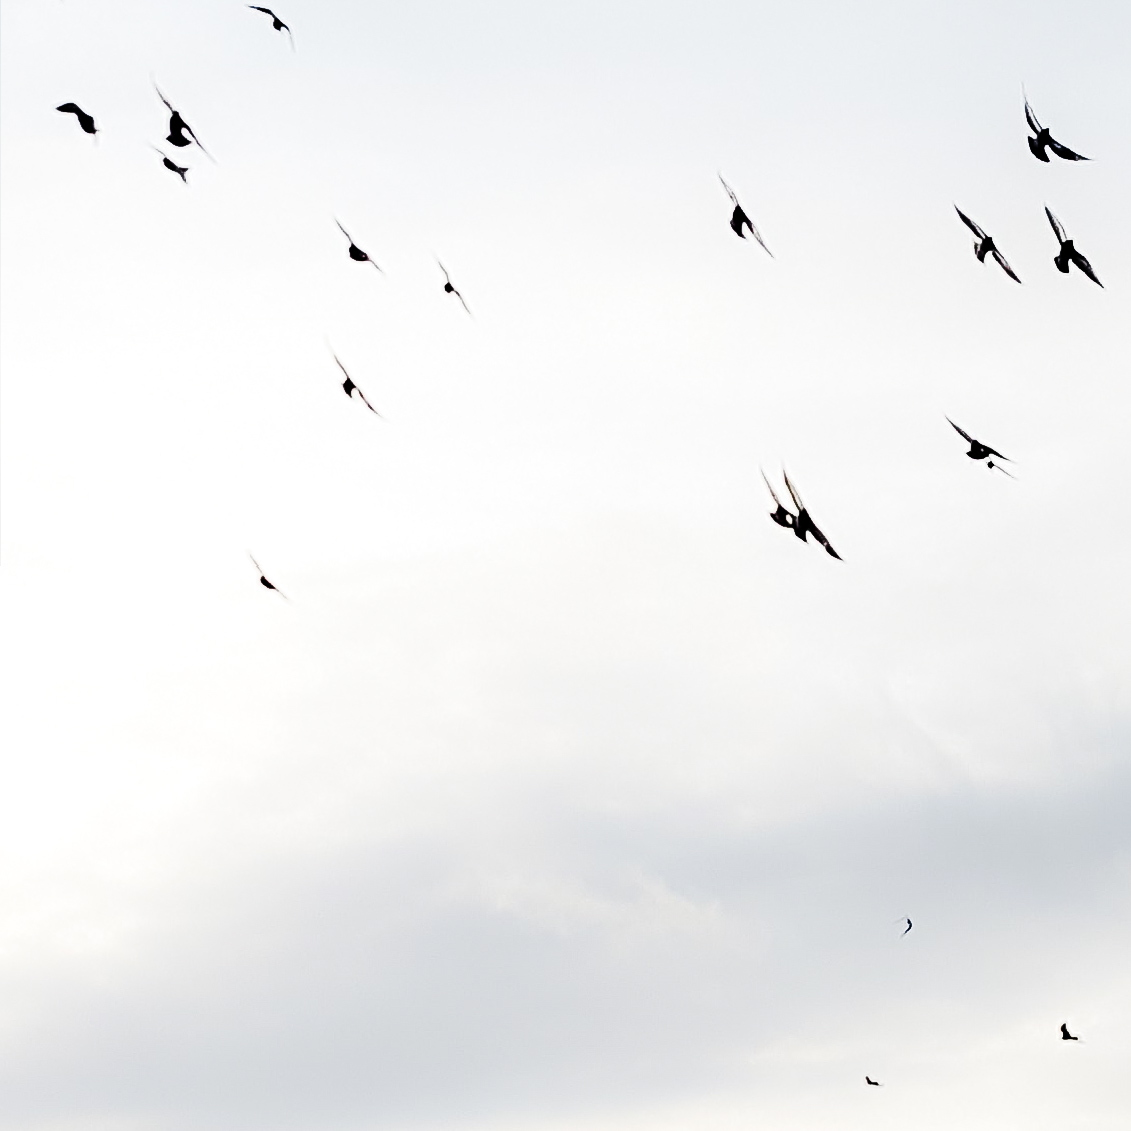 Monochrome, minimalist photo with white sky and black birds flying around.